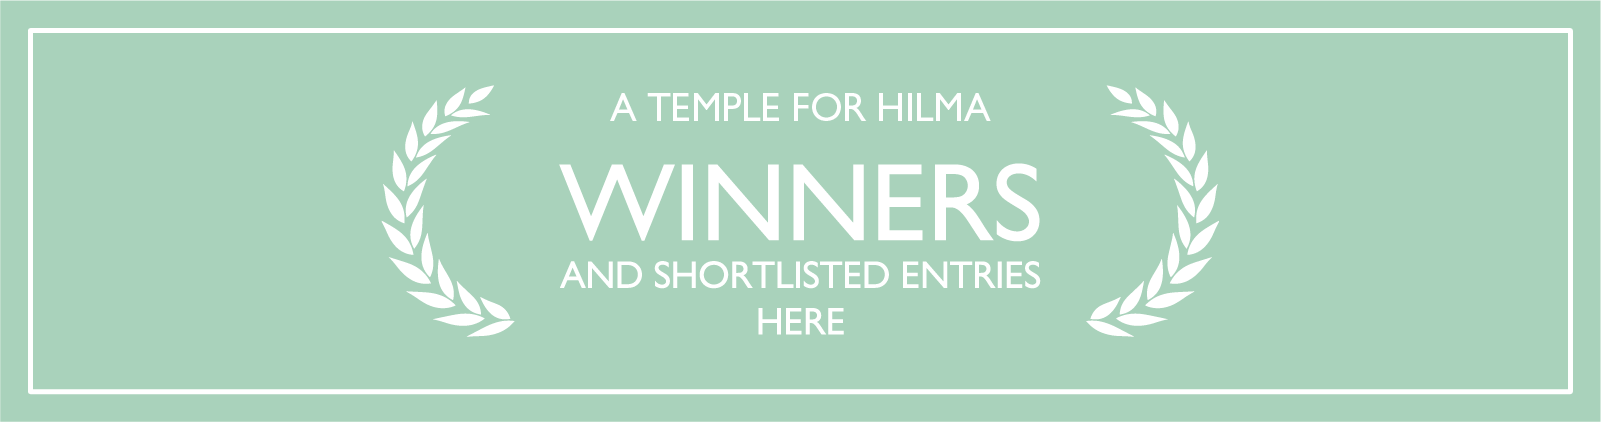 A Temple for Hilma